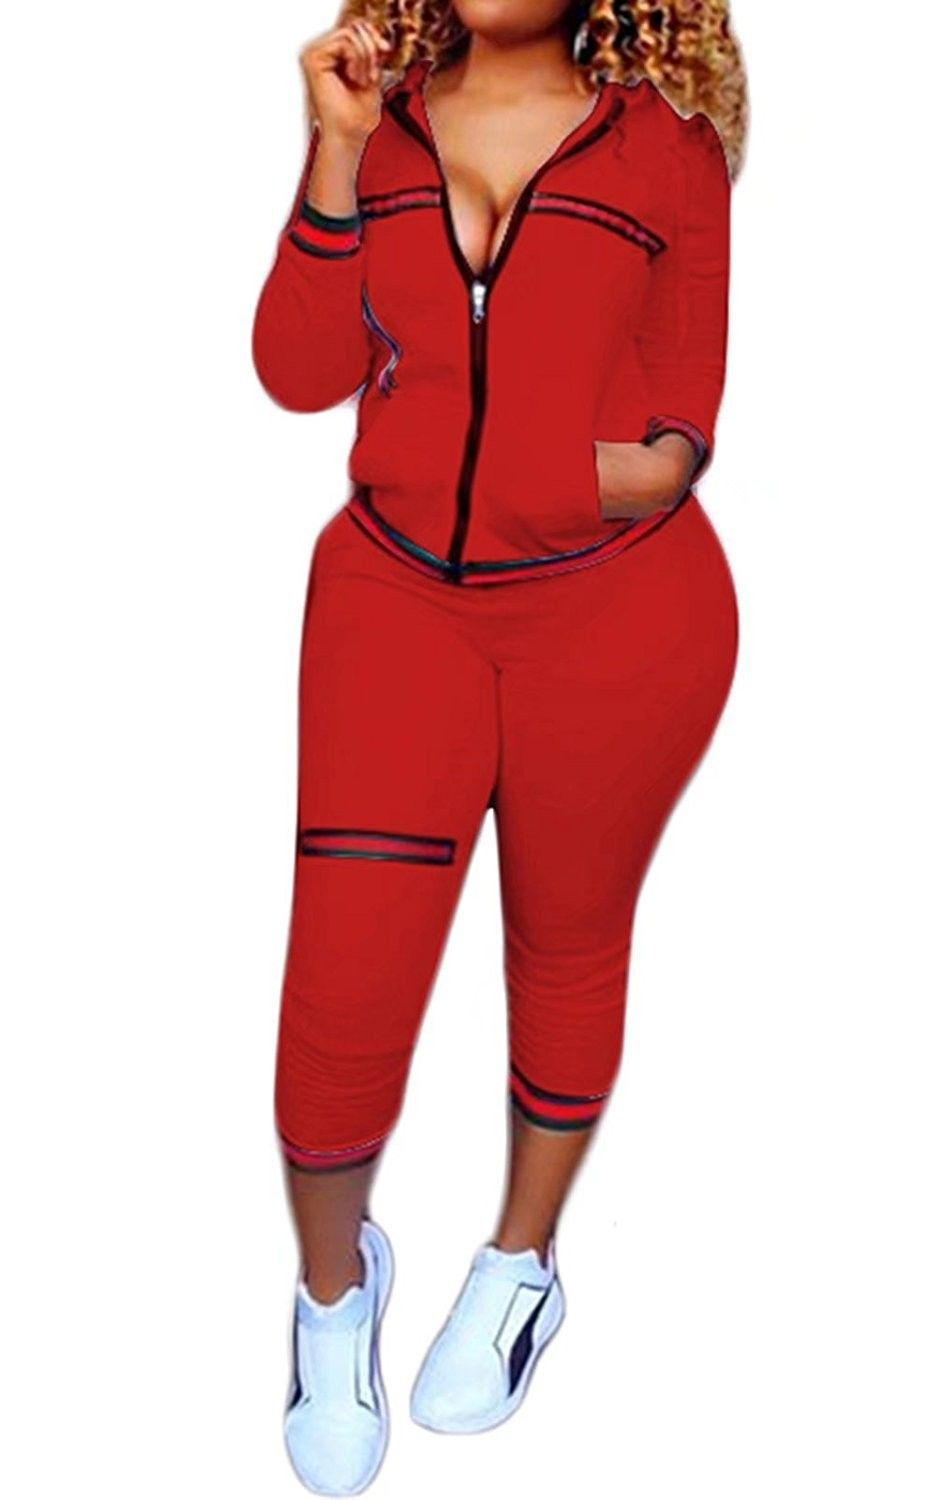 Womens 2 Piece Outfits Tracksuits Hooded Jacket Bodycon Pants Joggers Set -  Red - C41899MT6W9   Womens joggers outfit, Fresh outfits, Outfit sets